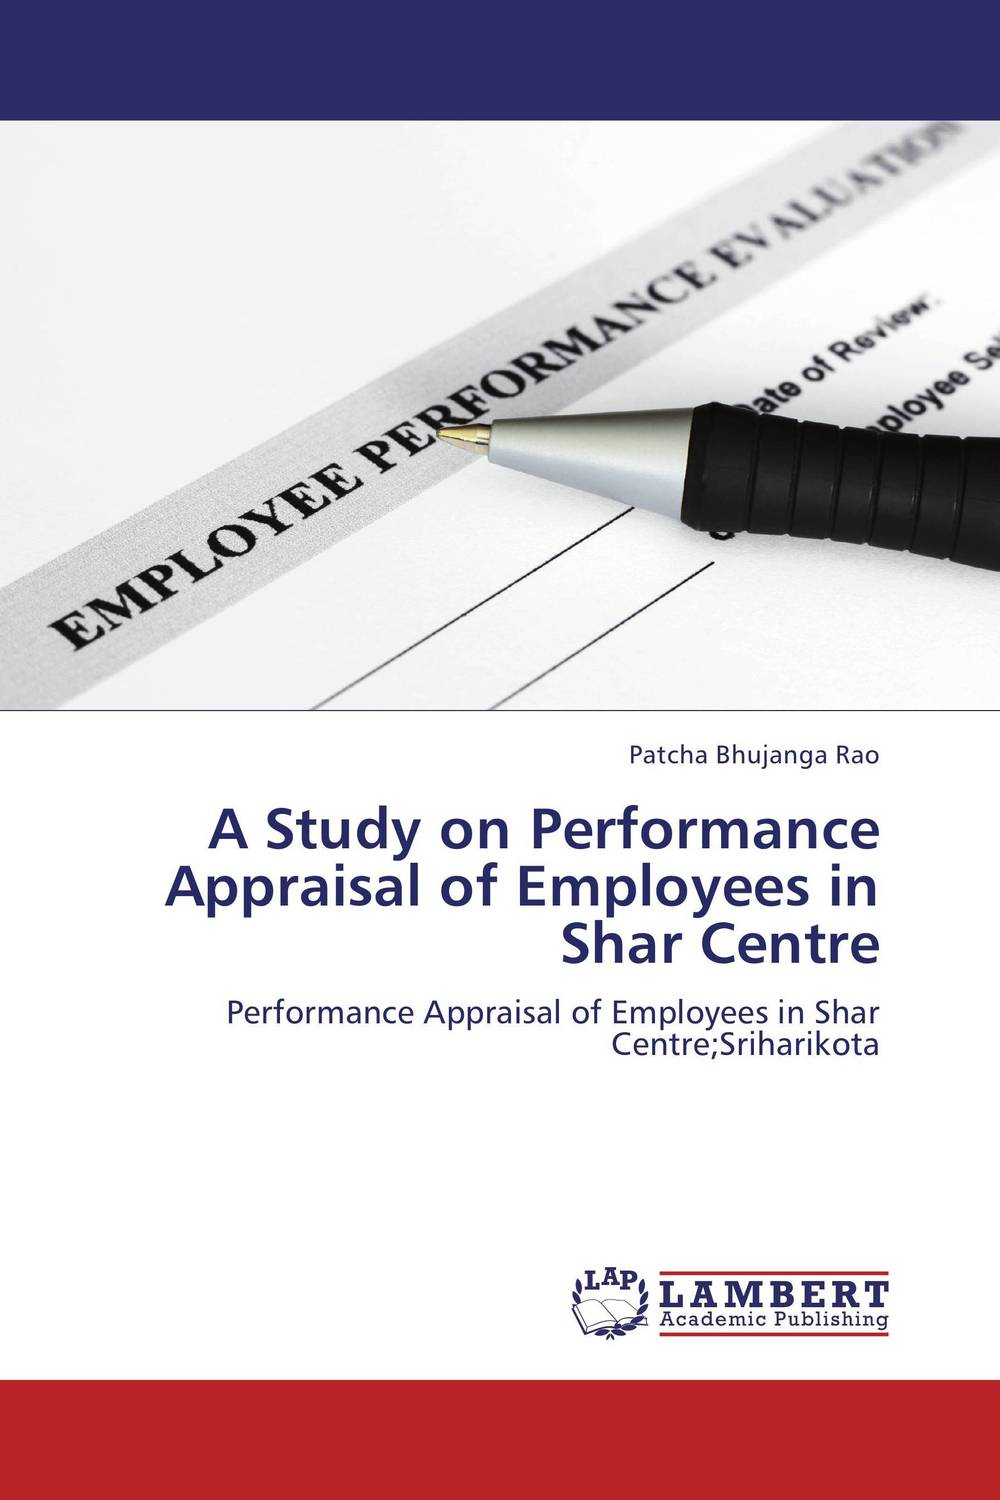 все цены на  A Study on Performance Appraisal of Employees in Shar Centre  в интернете